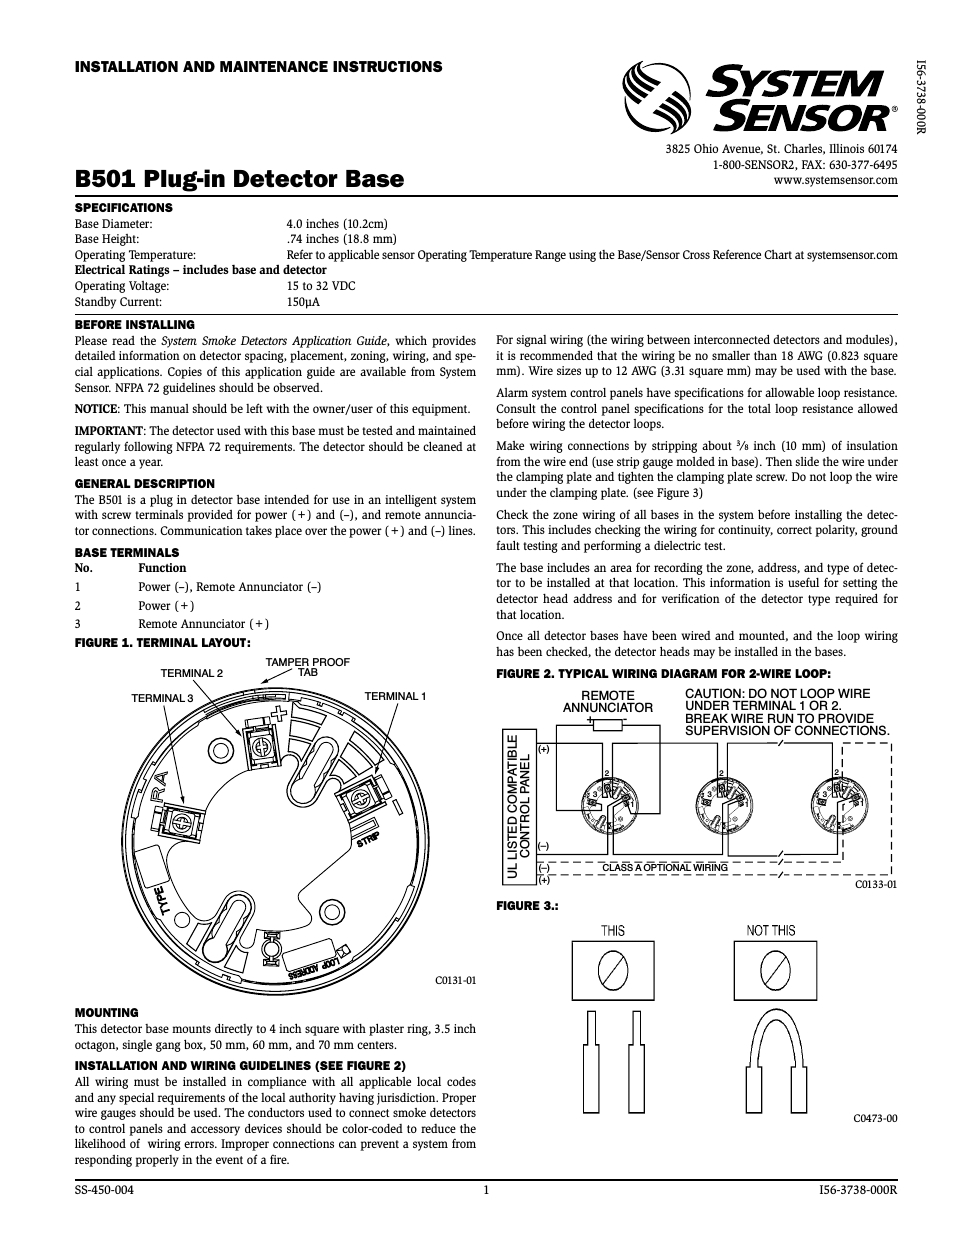 Oldsmobile Smoke Detector Wiring Diagram on smoke detector electrical wiring, smoke detectors and batteries, smoke detector clock, smoke detector location requirements, smoke detector spacing, smoke extraction system design, smoke detector schematic, smoke detector wiring 3-way, smoke detectors system, smoke detector manual, nec smoke detector placement diagram, ionization fire detector diagram, smoke detector wiring two detecters, smoke detector battery diagram, smoke detector relay wiring, process flow diagram, smoke detector relay box, smoke detector circuit diagram, how a smoke detector works diagram, smoke detector installation,